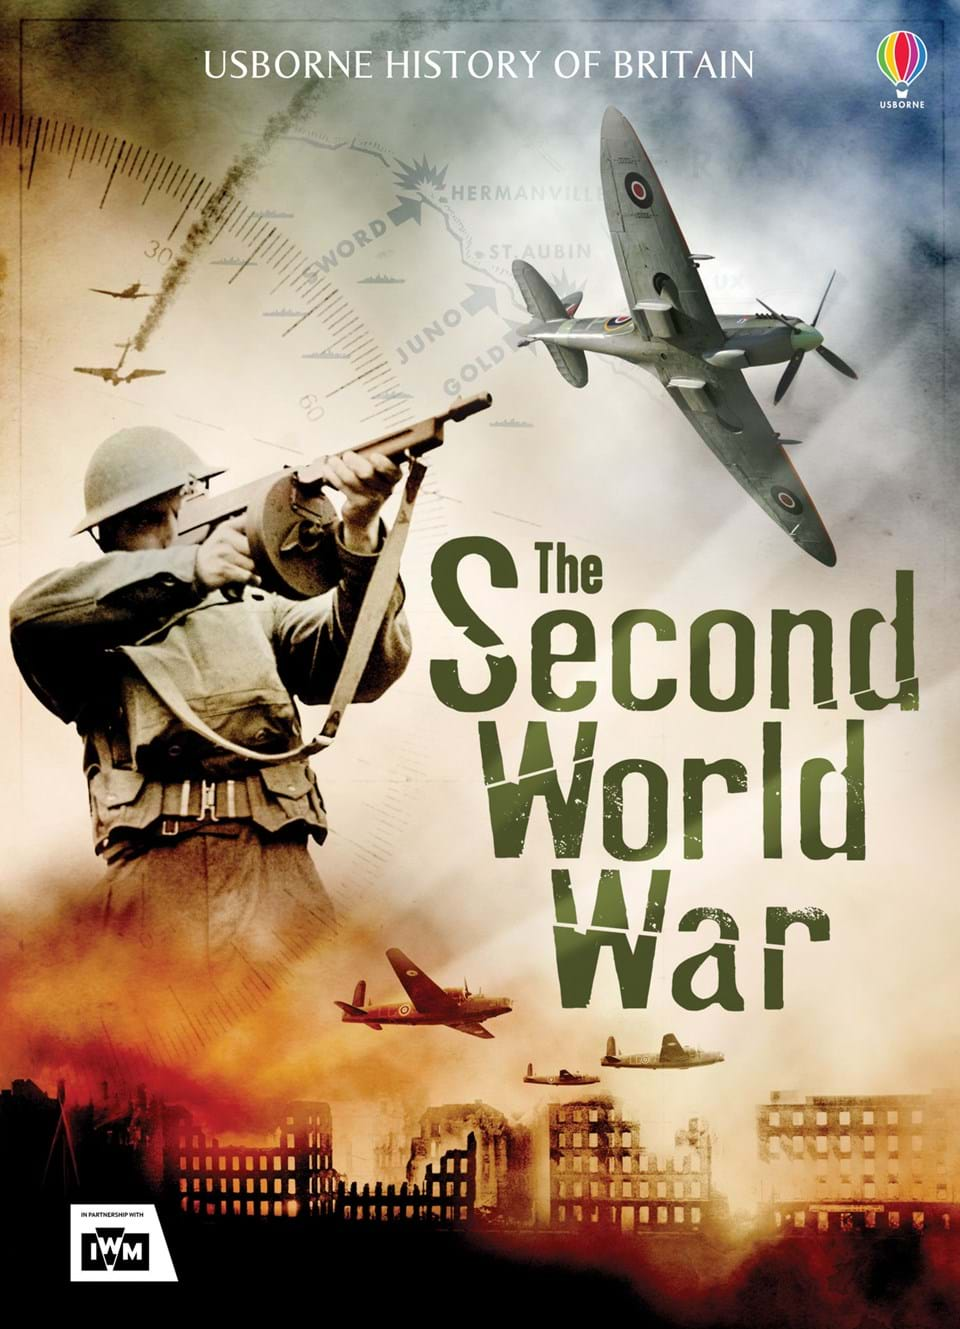 an introduction to the history of second world war World war 1 causes essay introduction my experience with computers essay (song of solomon essay zapt) how to write scholarly research paper who has been the most influential person in your life essay feuille chataignier descriptive essay.